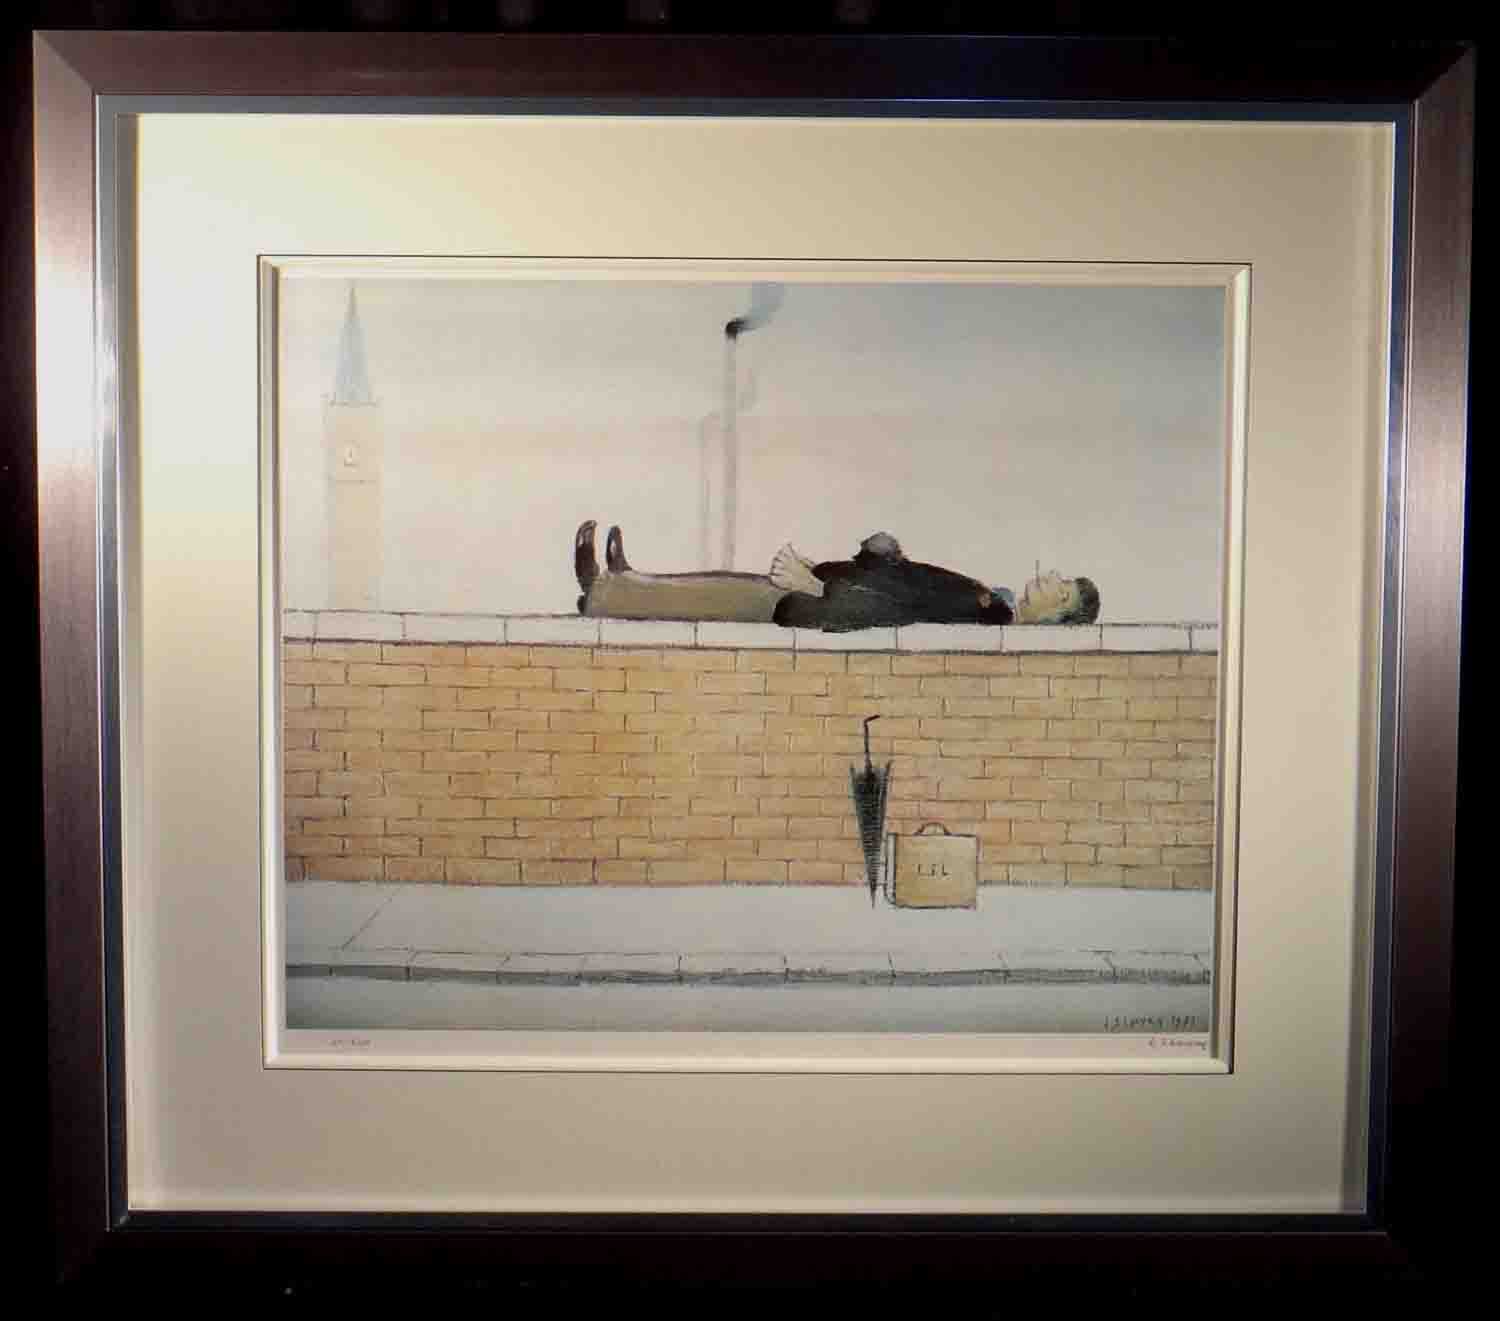 lowry, Man lying on a wall, signed print lslowry